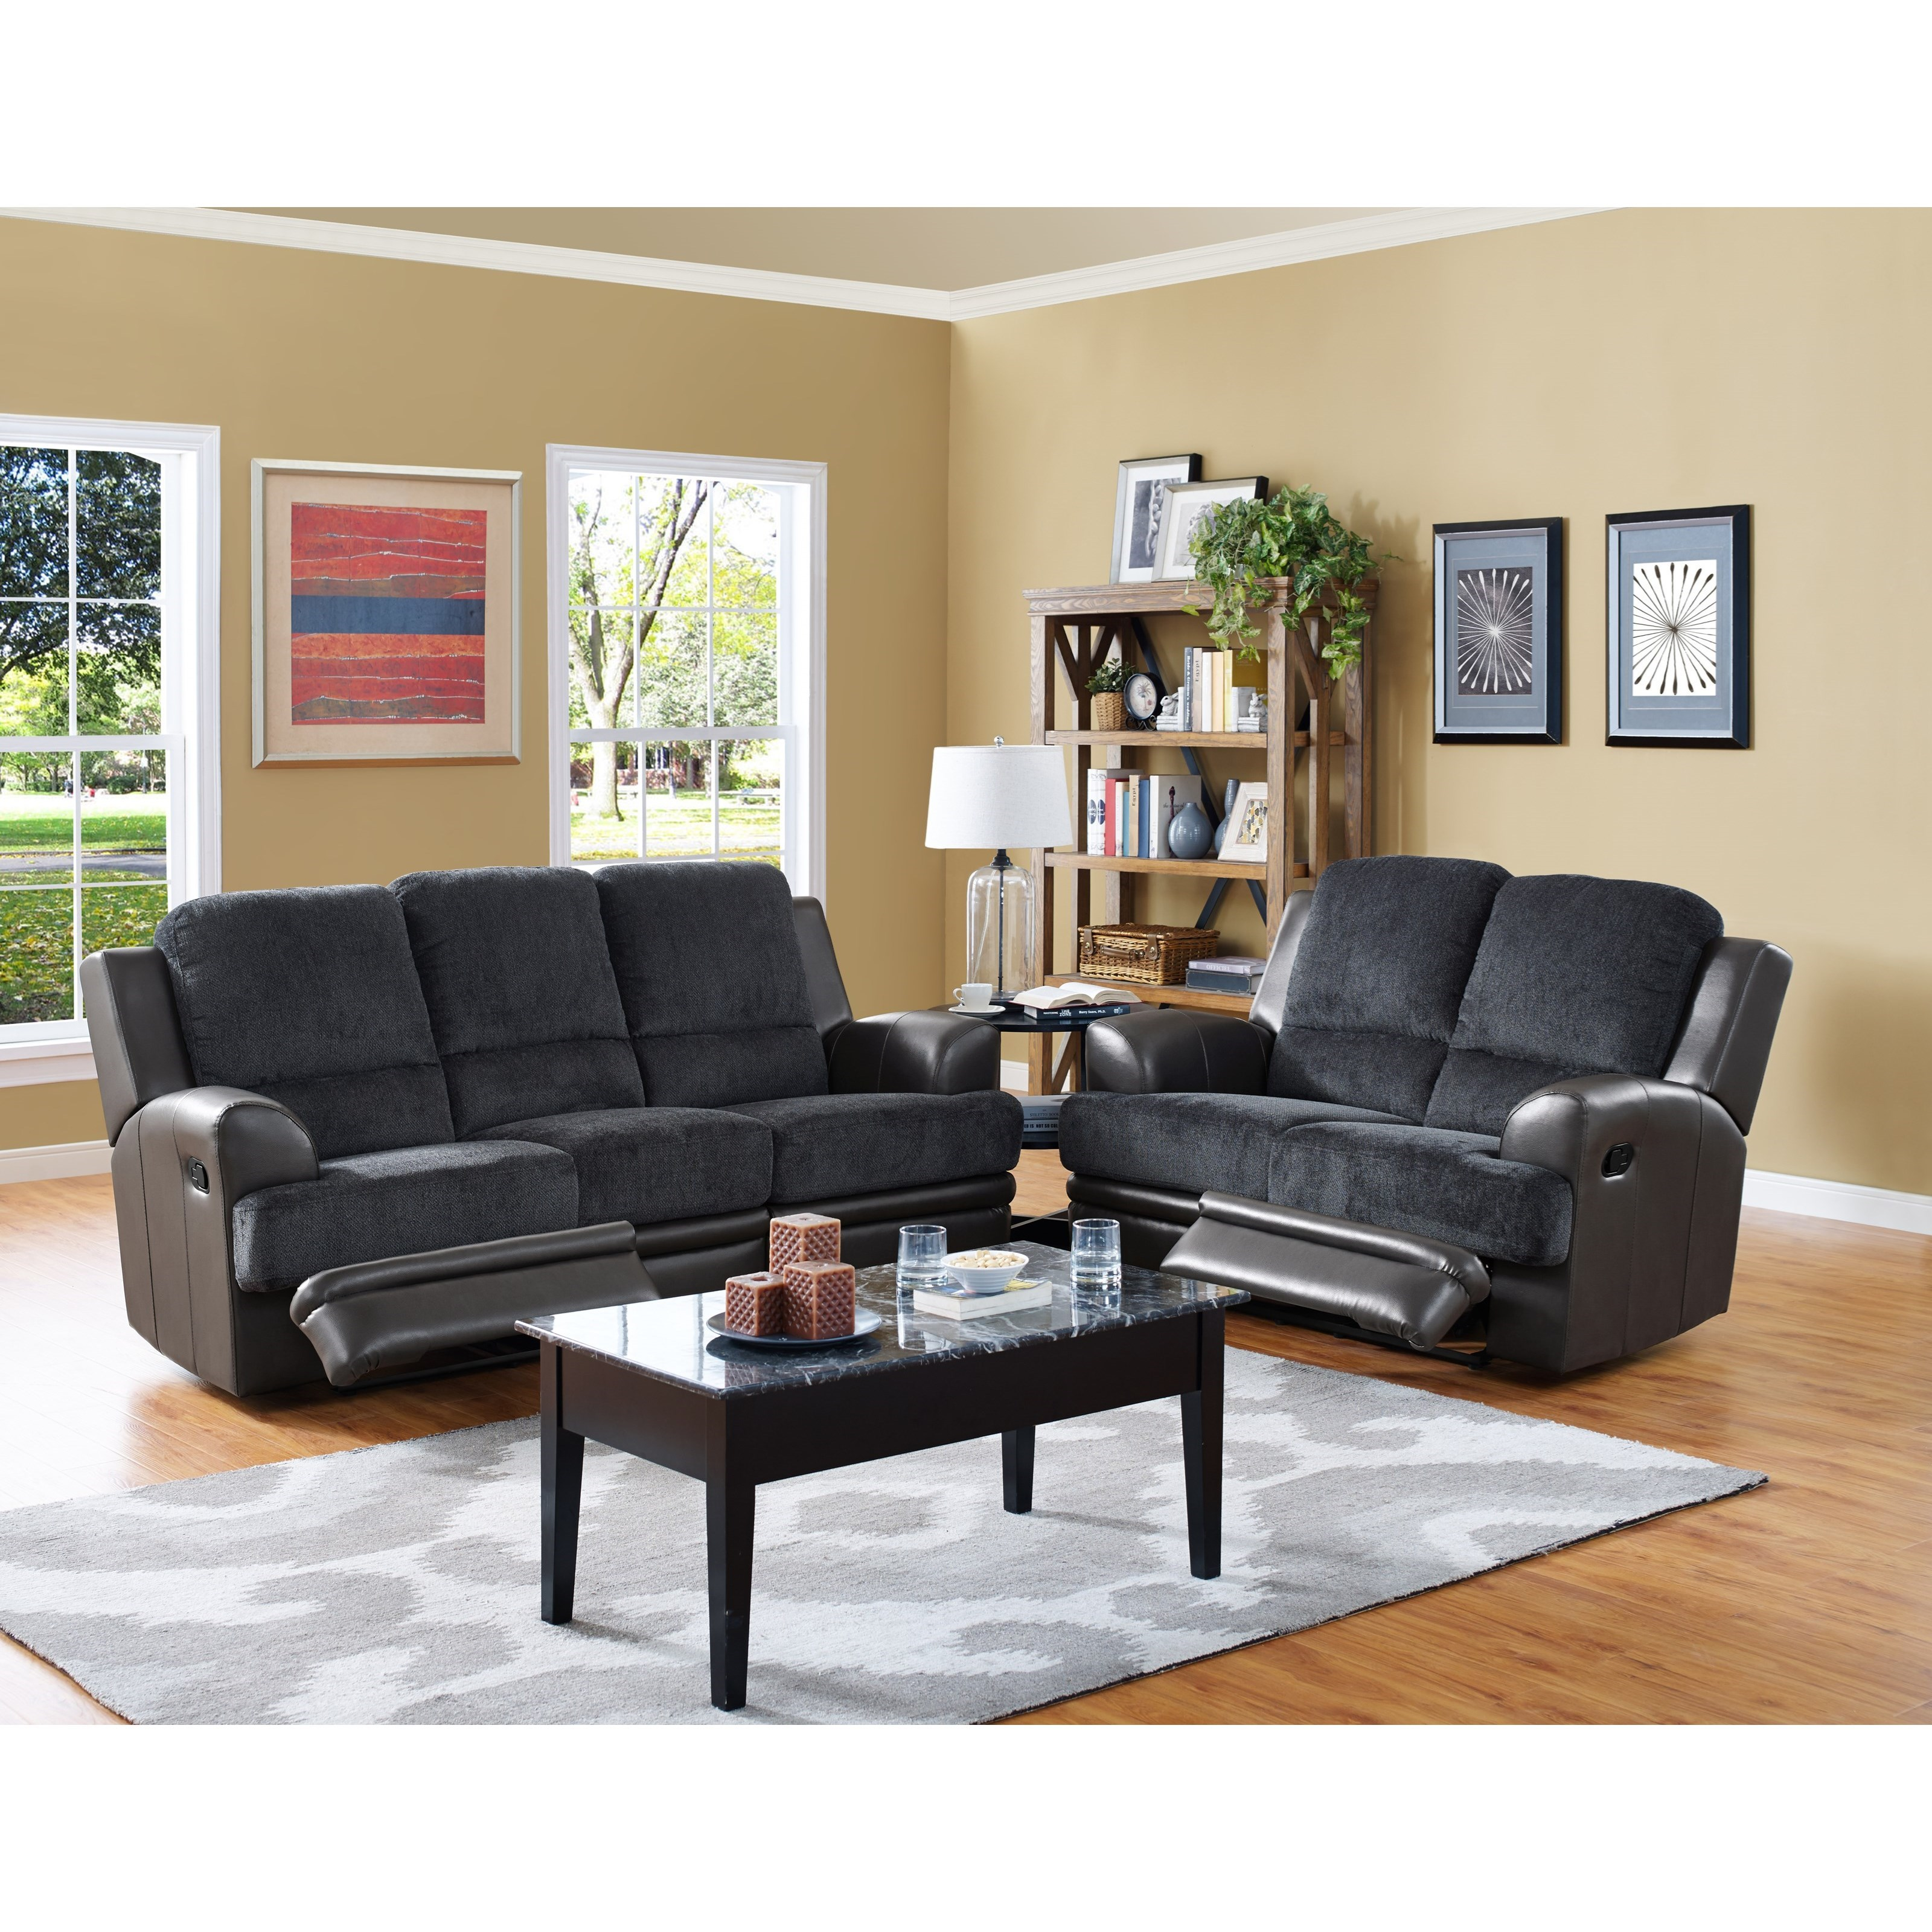 New Classic Rico Reclining Living Room Group - Item Number: 2209 Reclining Living Room Group 1